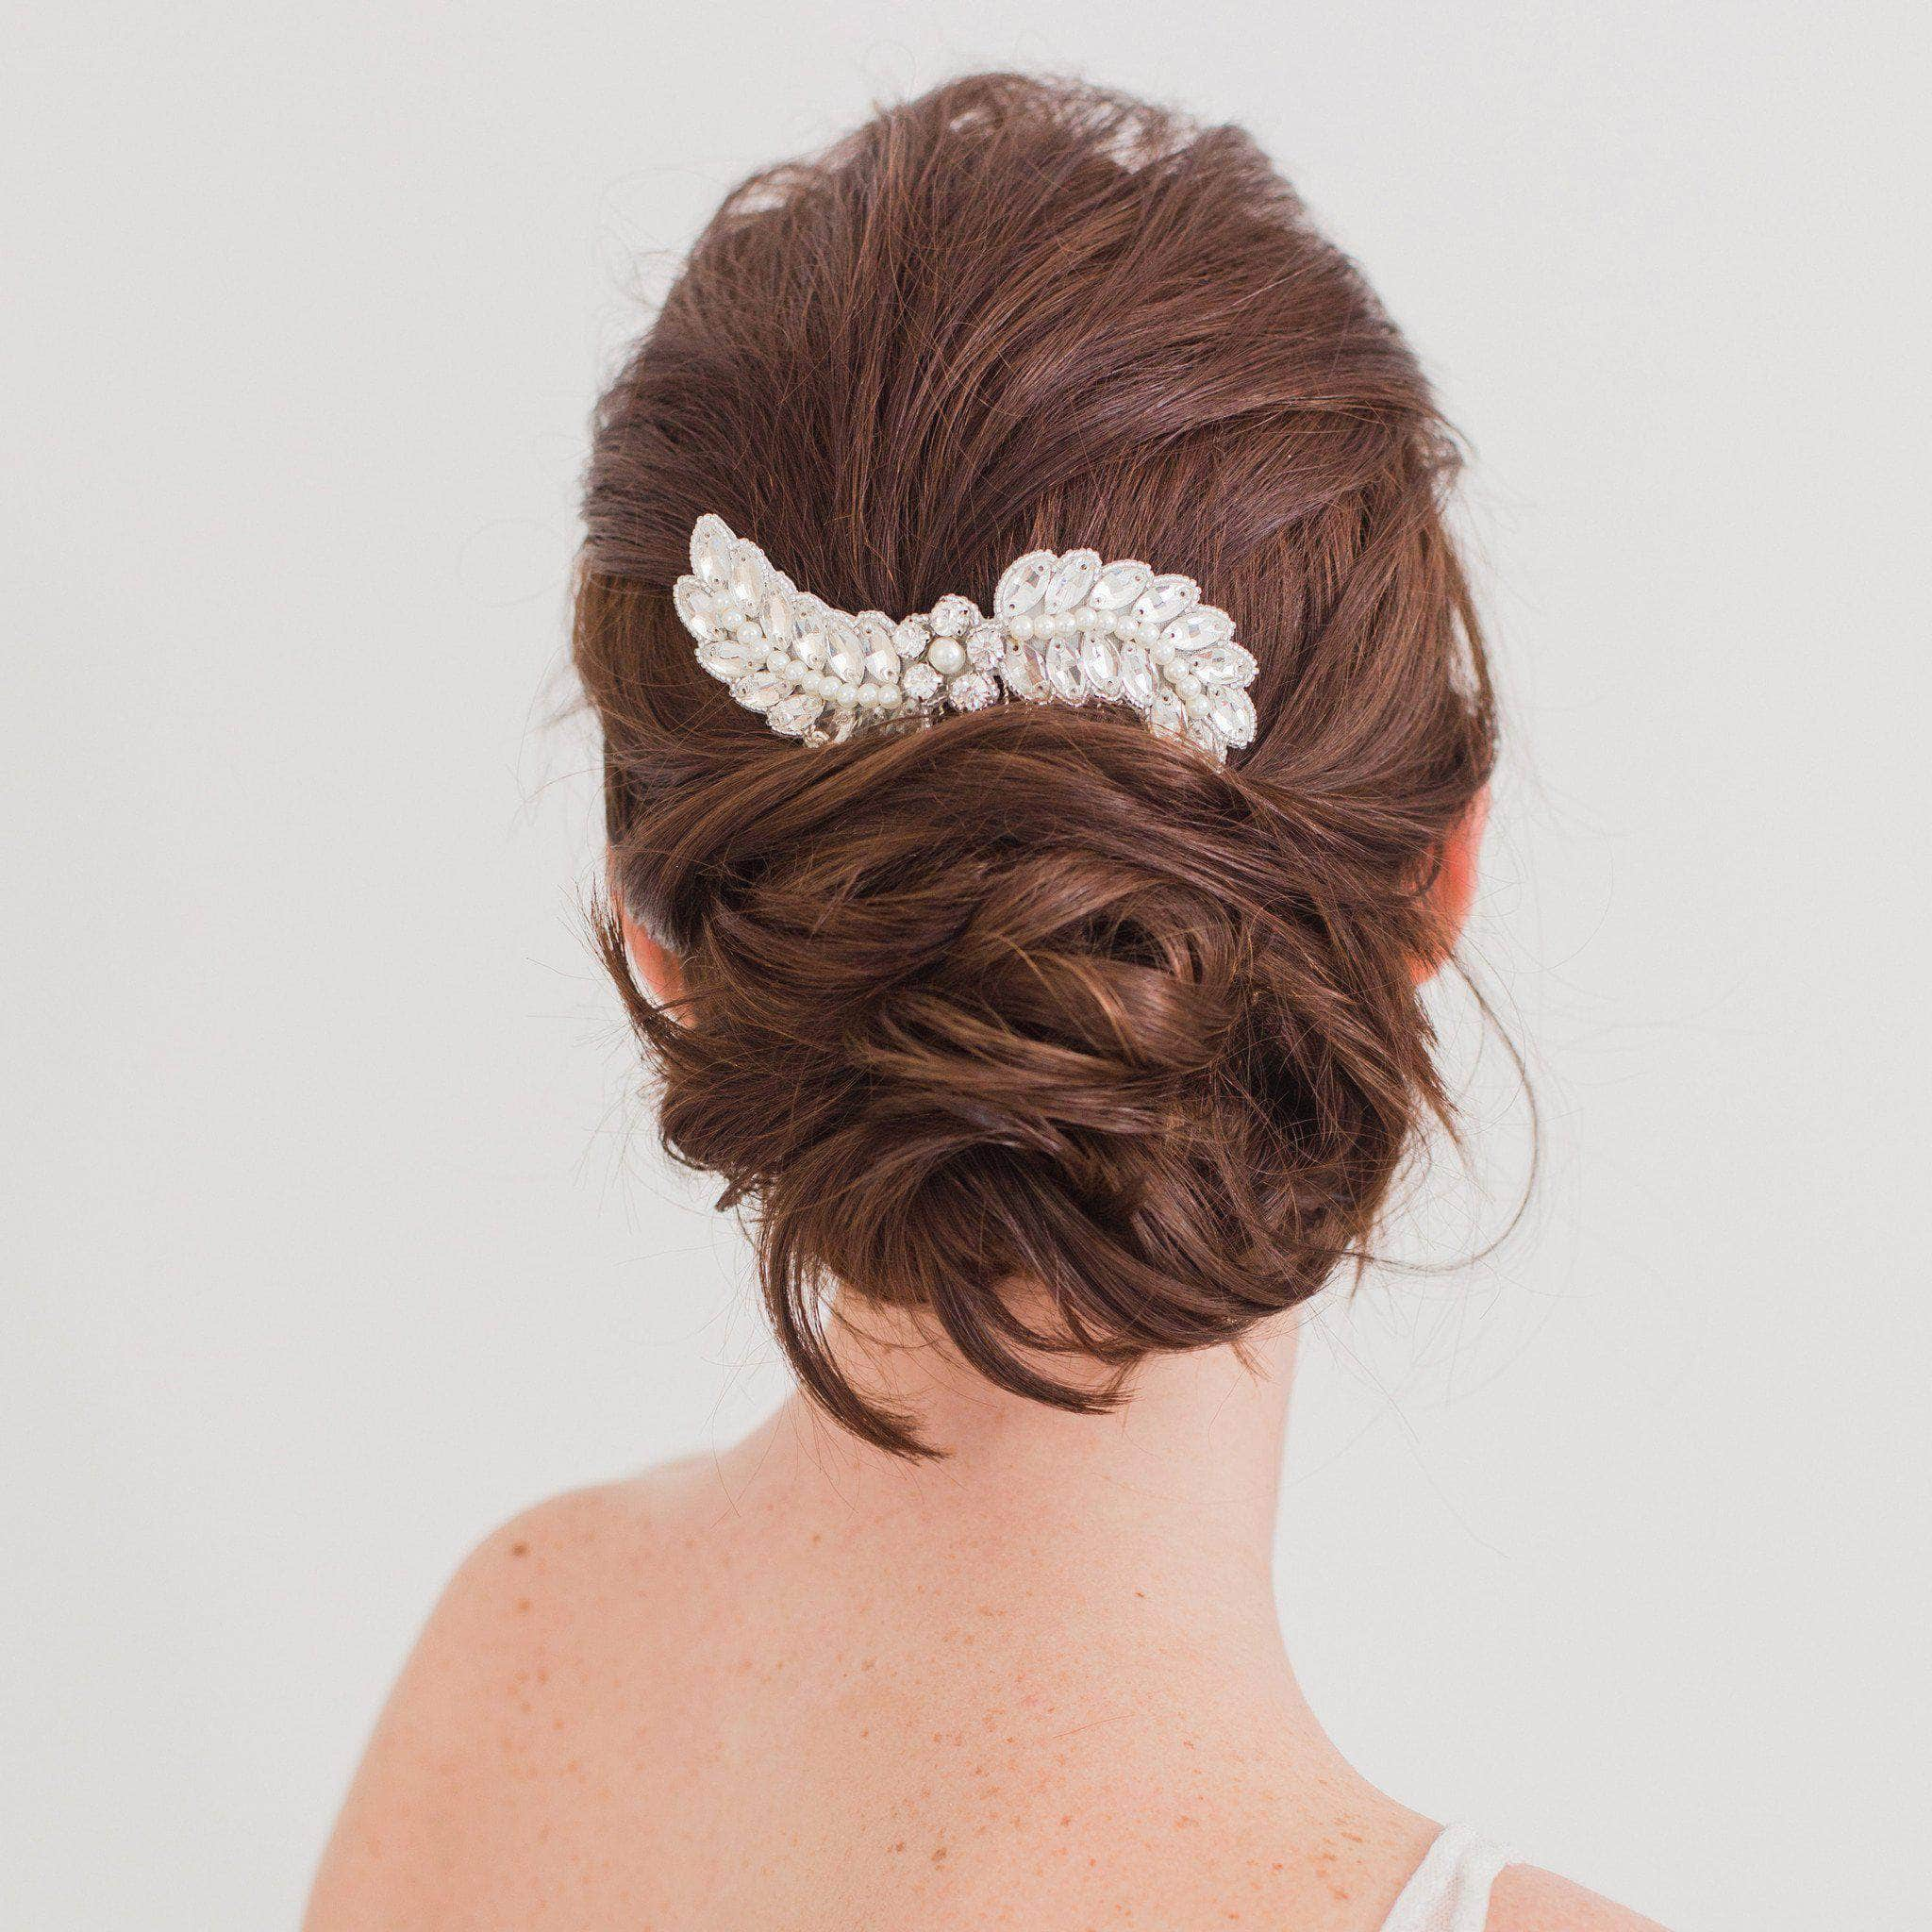 Wedding hair comb with crystals and pearls